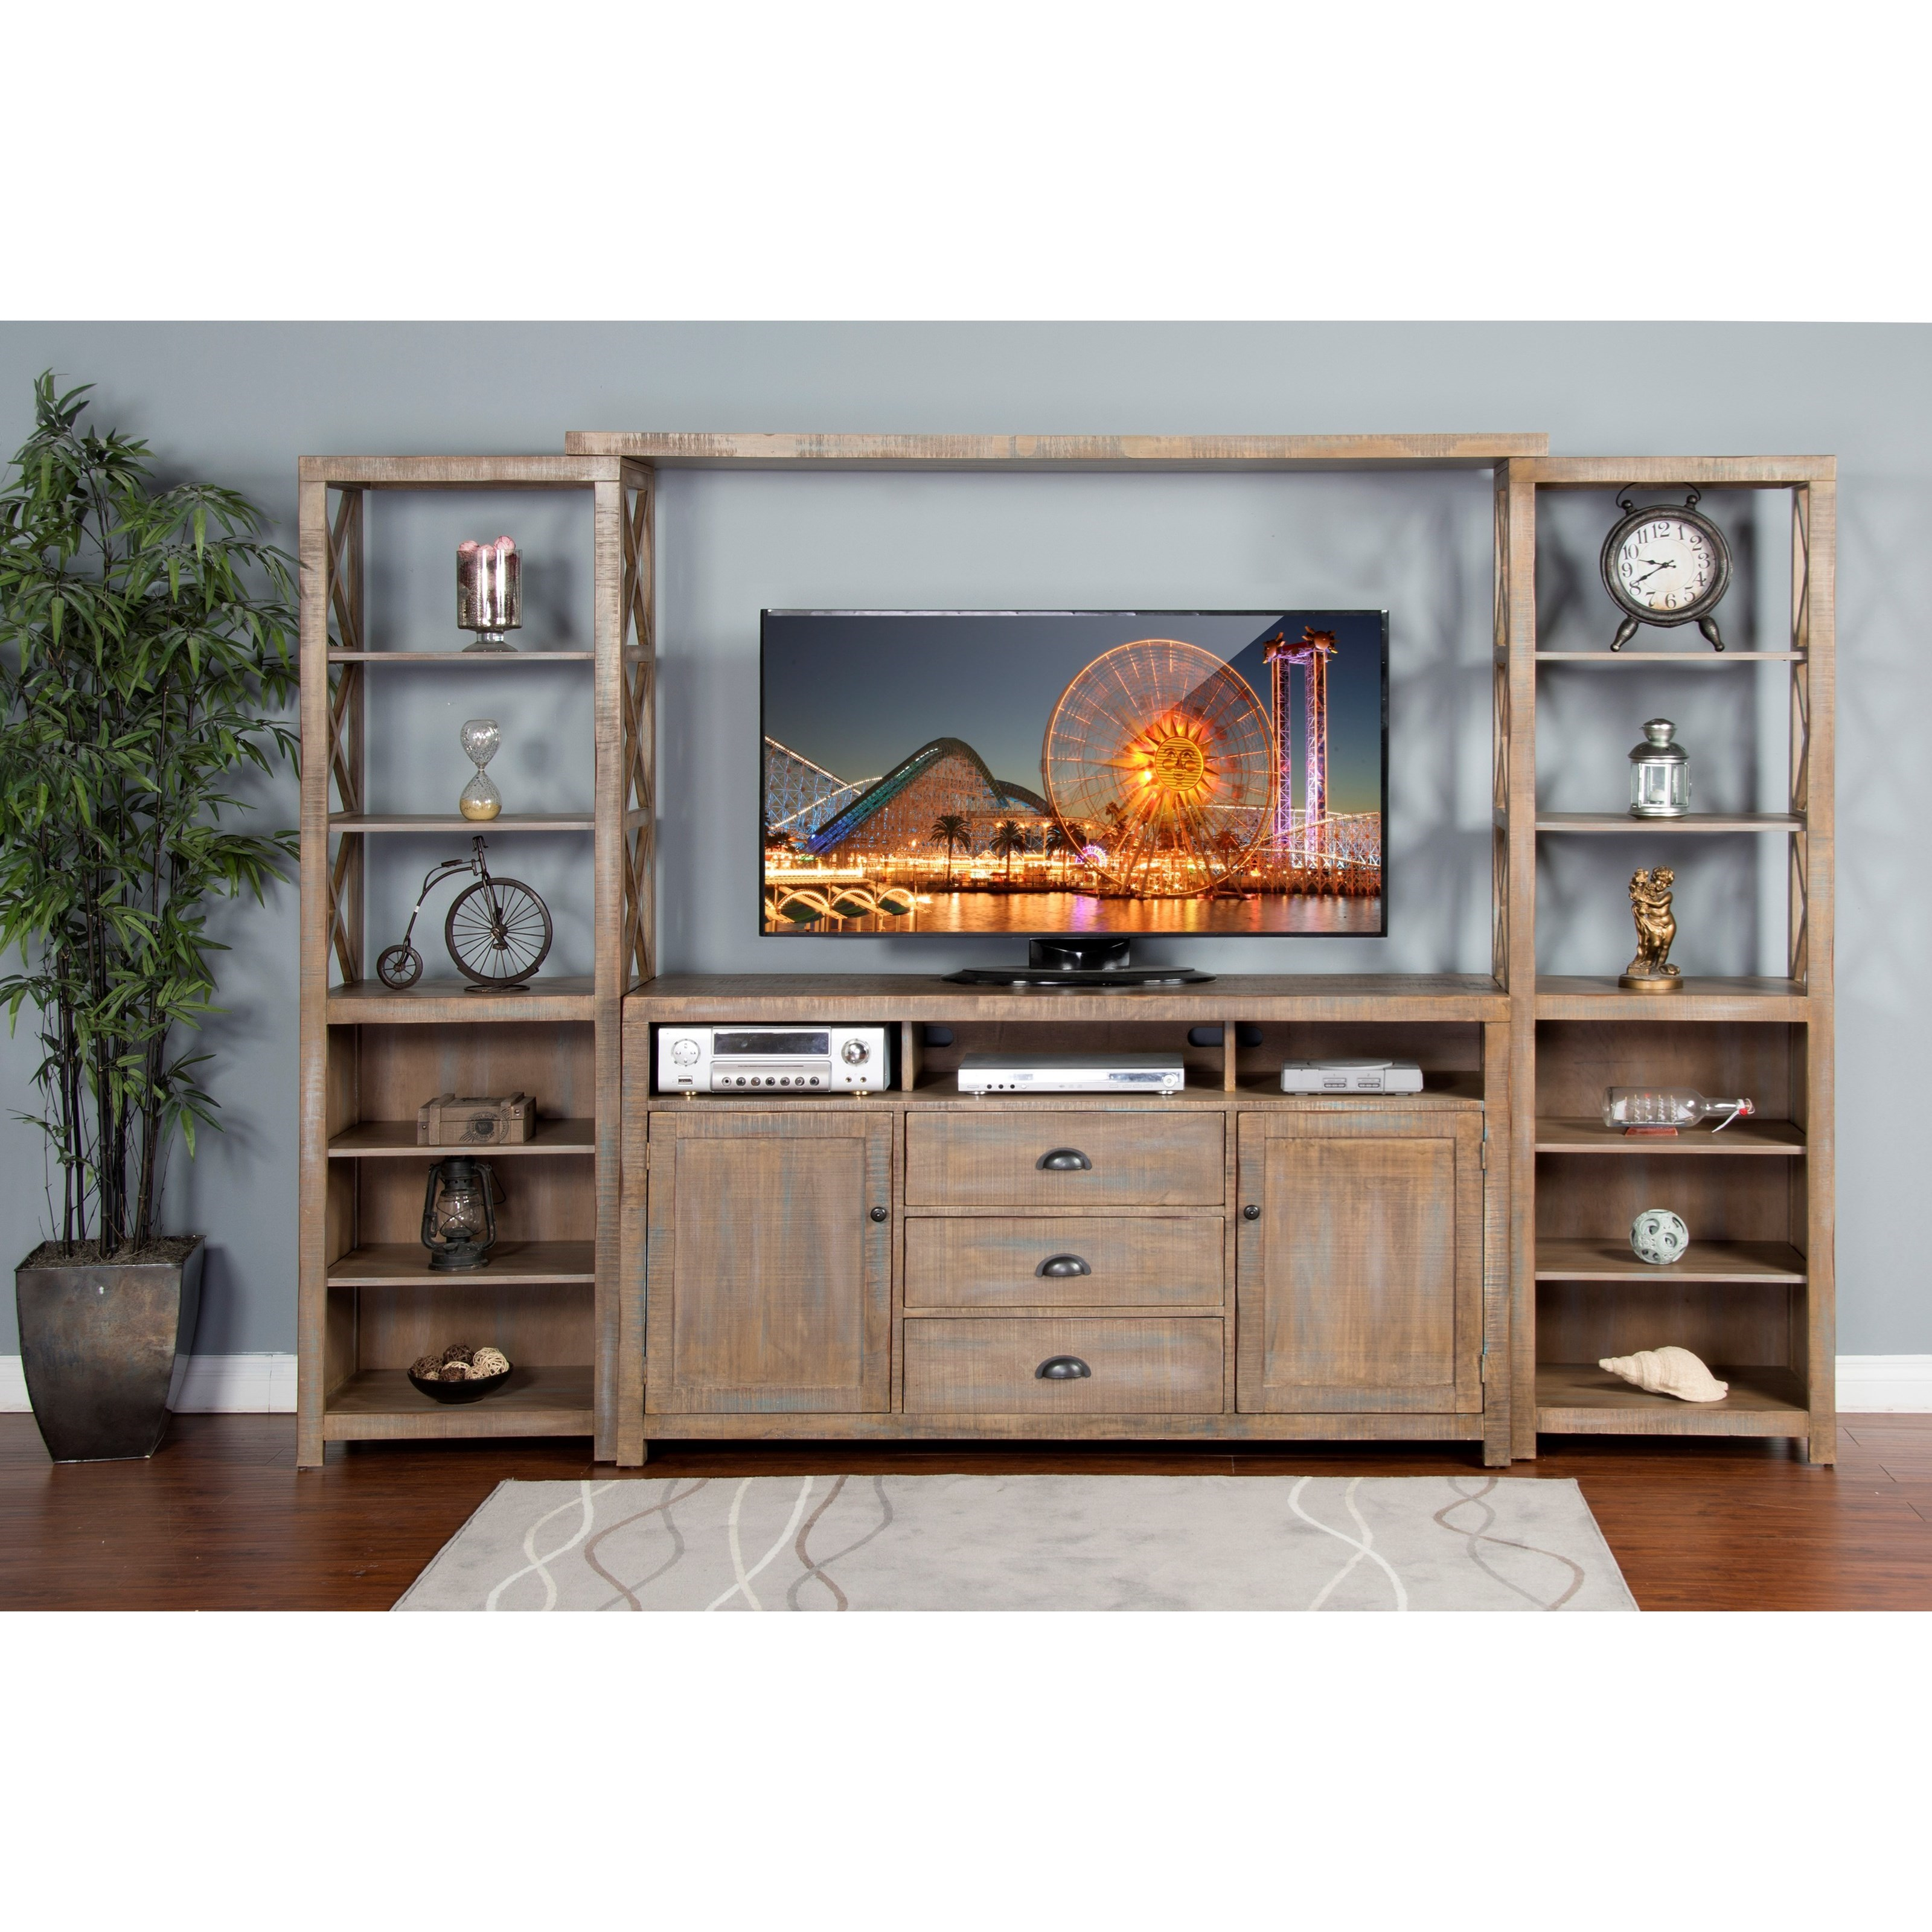 "Sunny Designs 3563 66"" Entertainment Wall - Item Number: 3563WB"